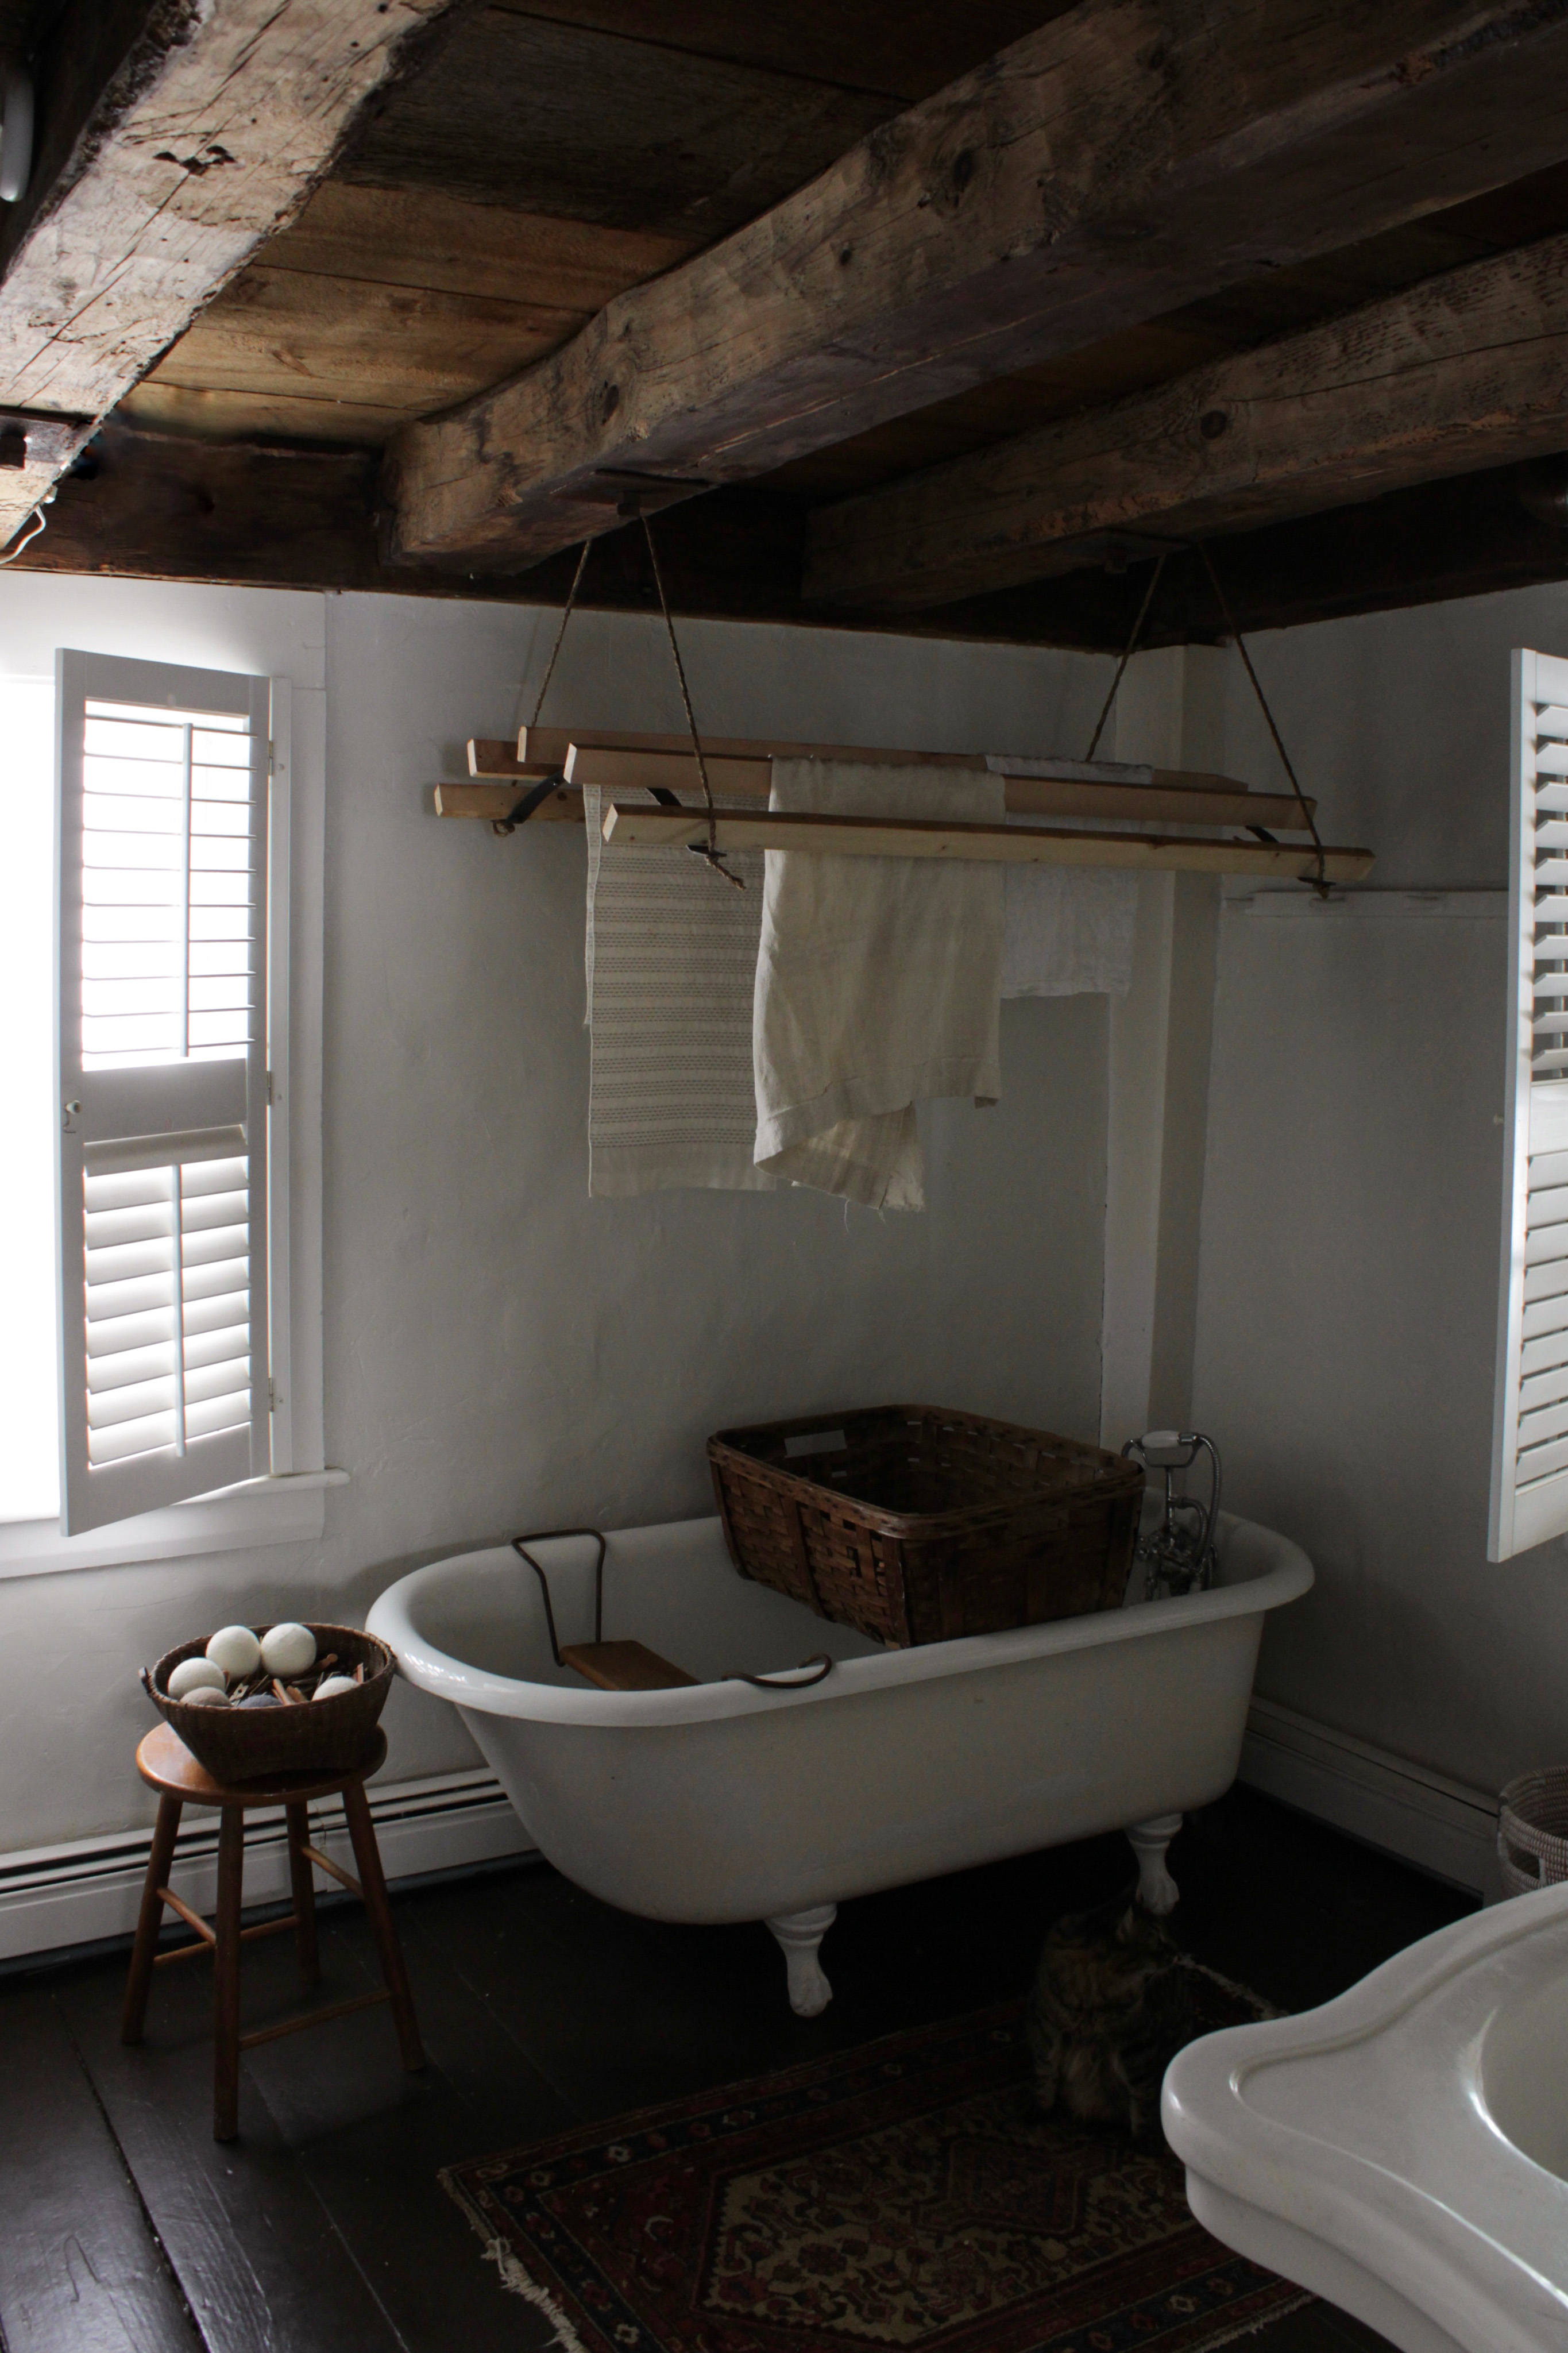 Finished Laundry Rack, Photo by Bess Piergrossi